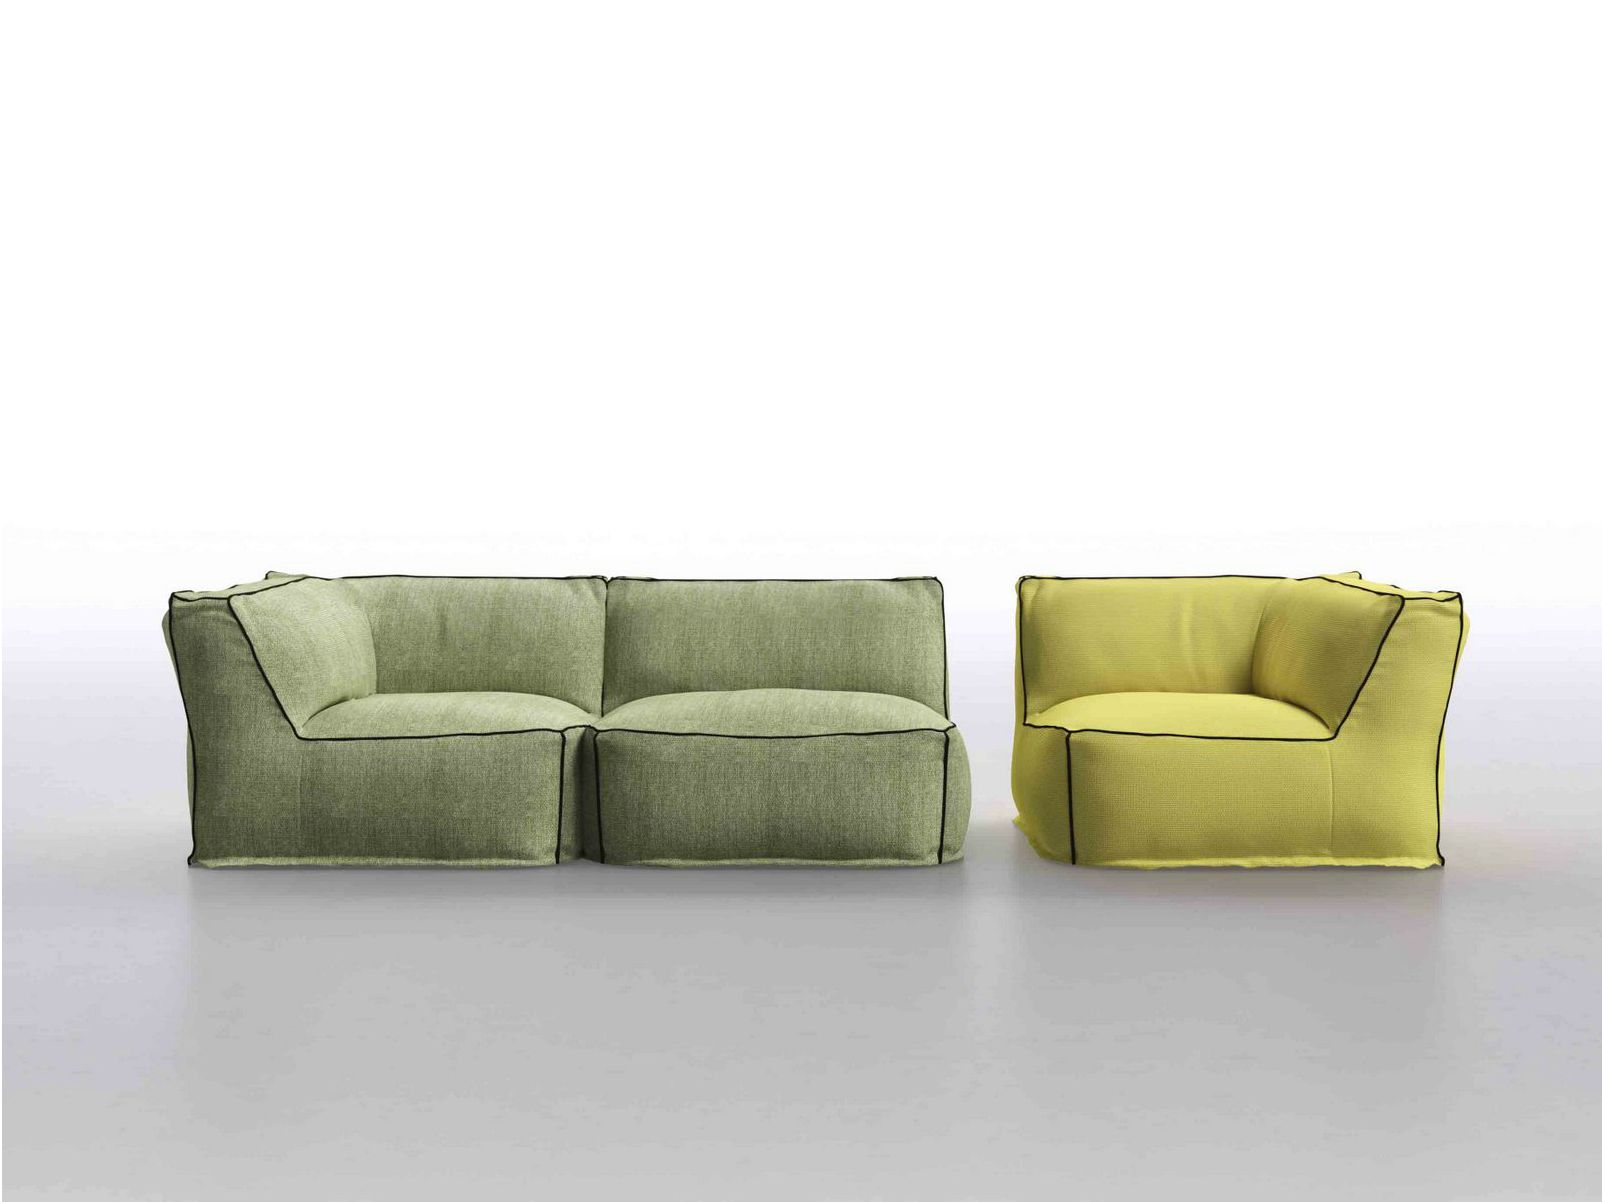 Sectional Upholstered Fabric Garden Sofa Soft Sectional